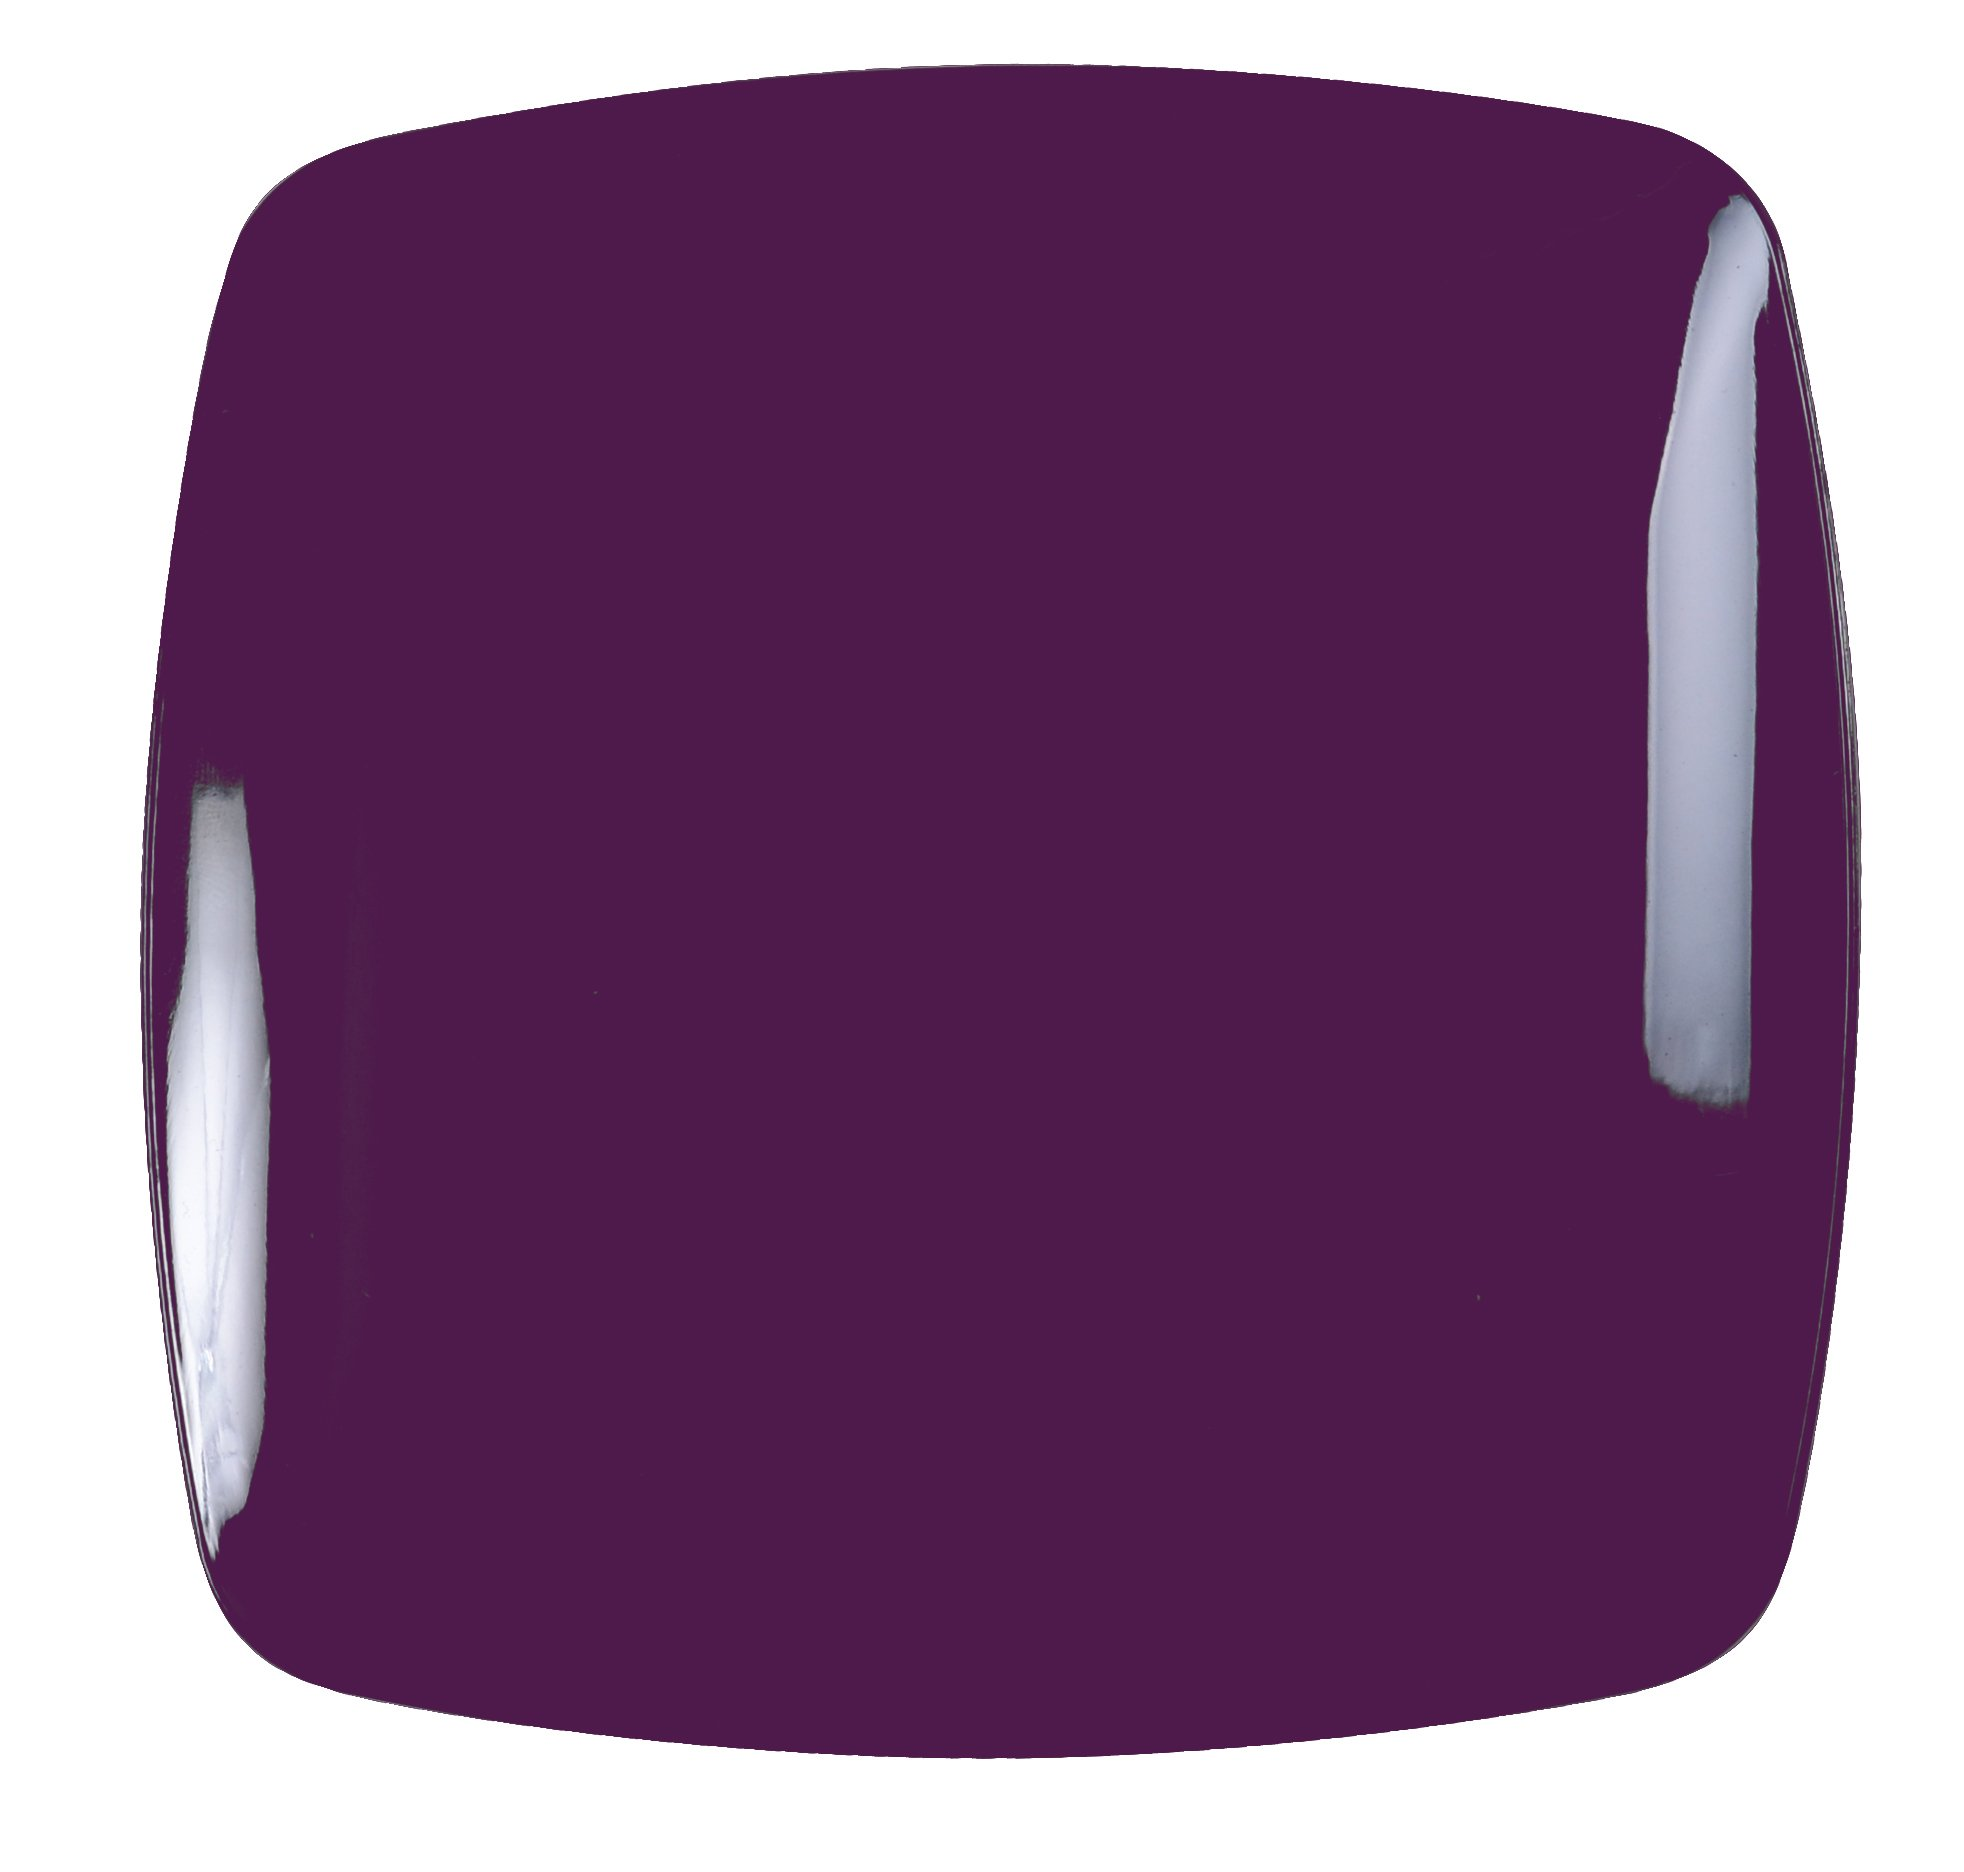 Renaissance 120-Piece Rounded Square China-Like Plate, 10-Inch, Purple, Case of 12